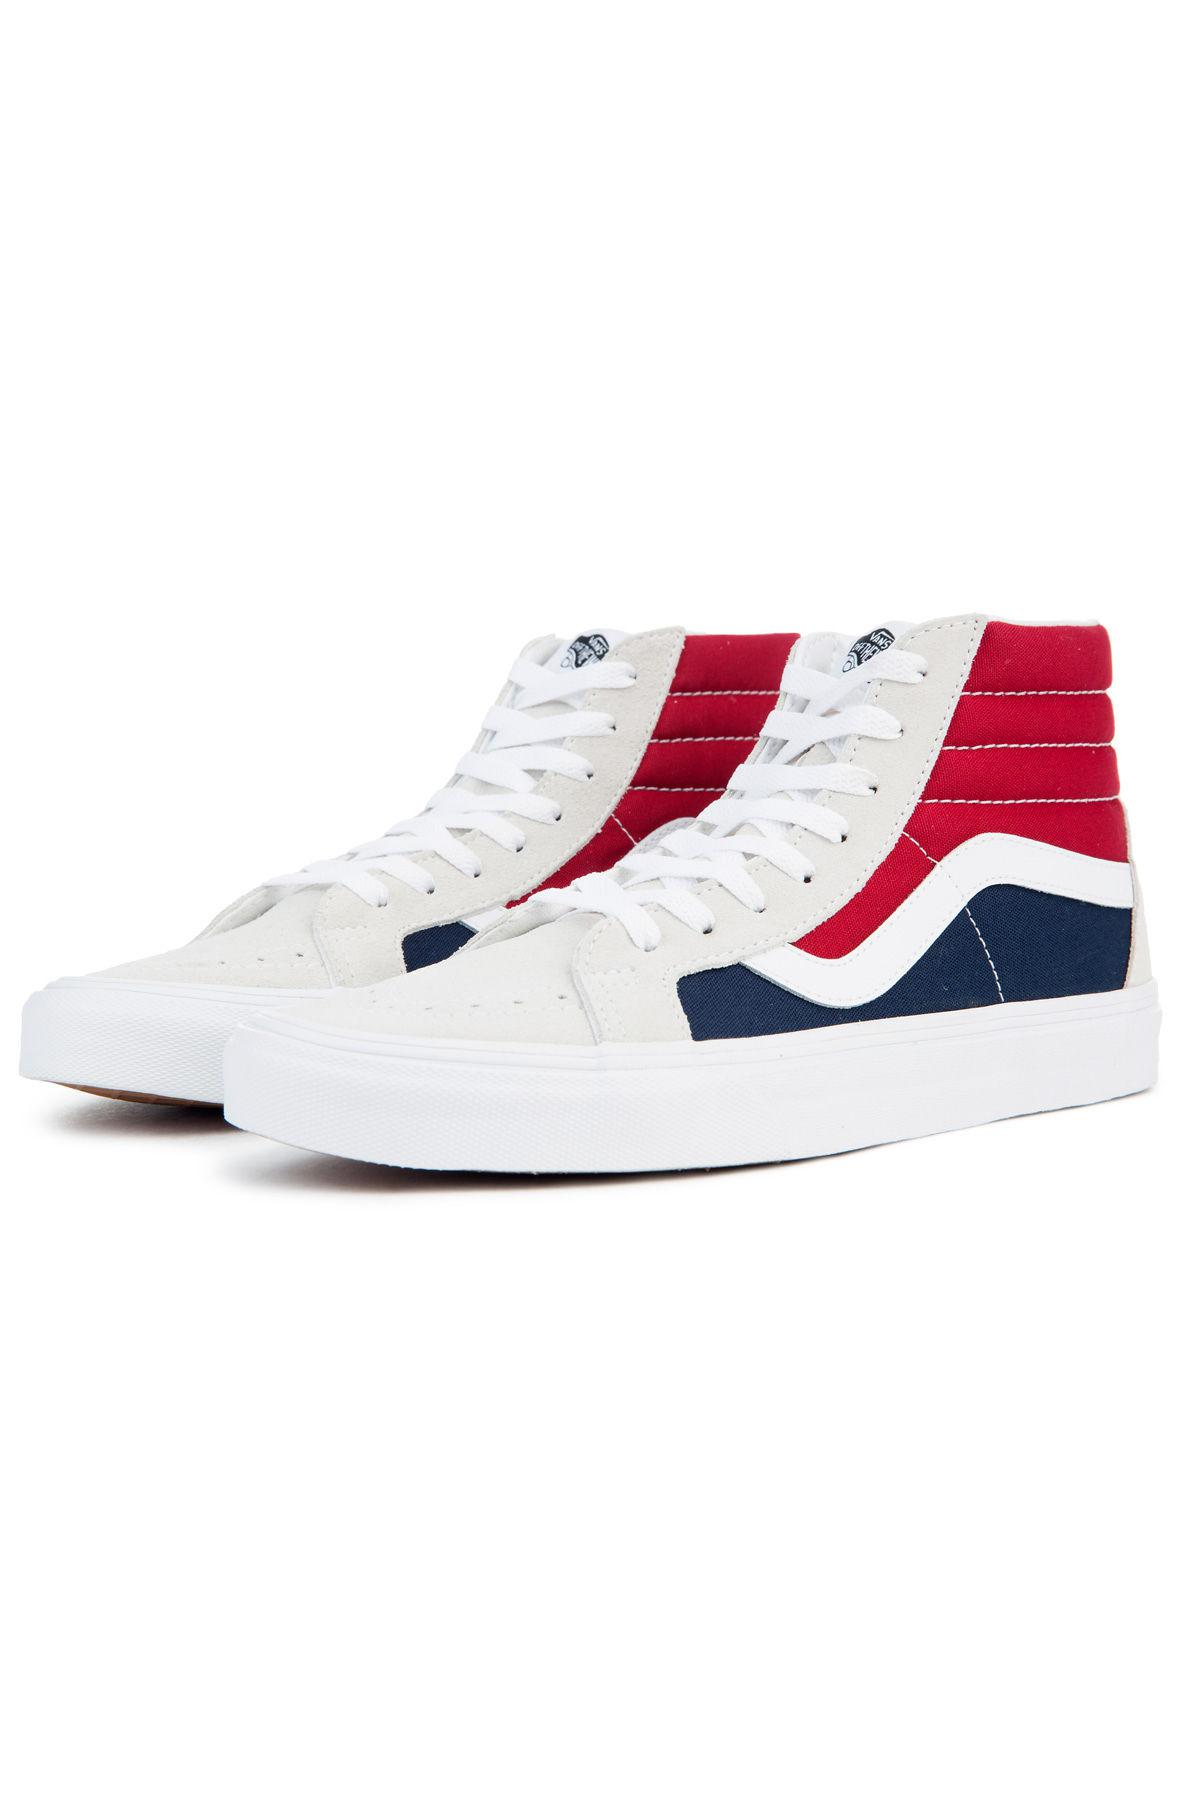 0d47a7091c02d1 Lyst - Vans The Men s Sk8-hi Reissue Retro Block In White  Red And ...